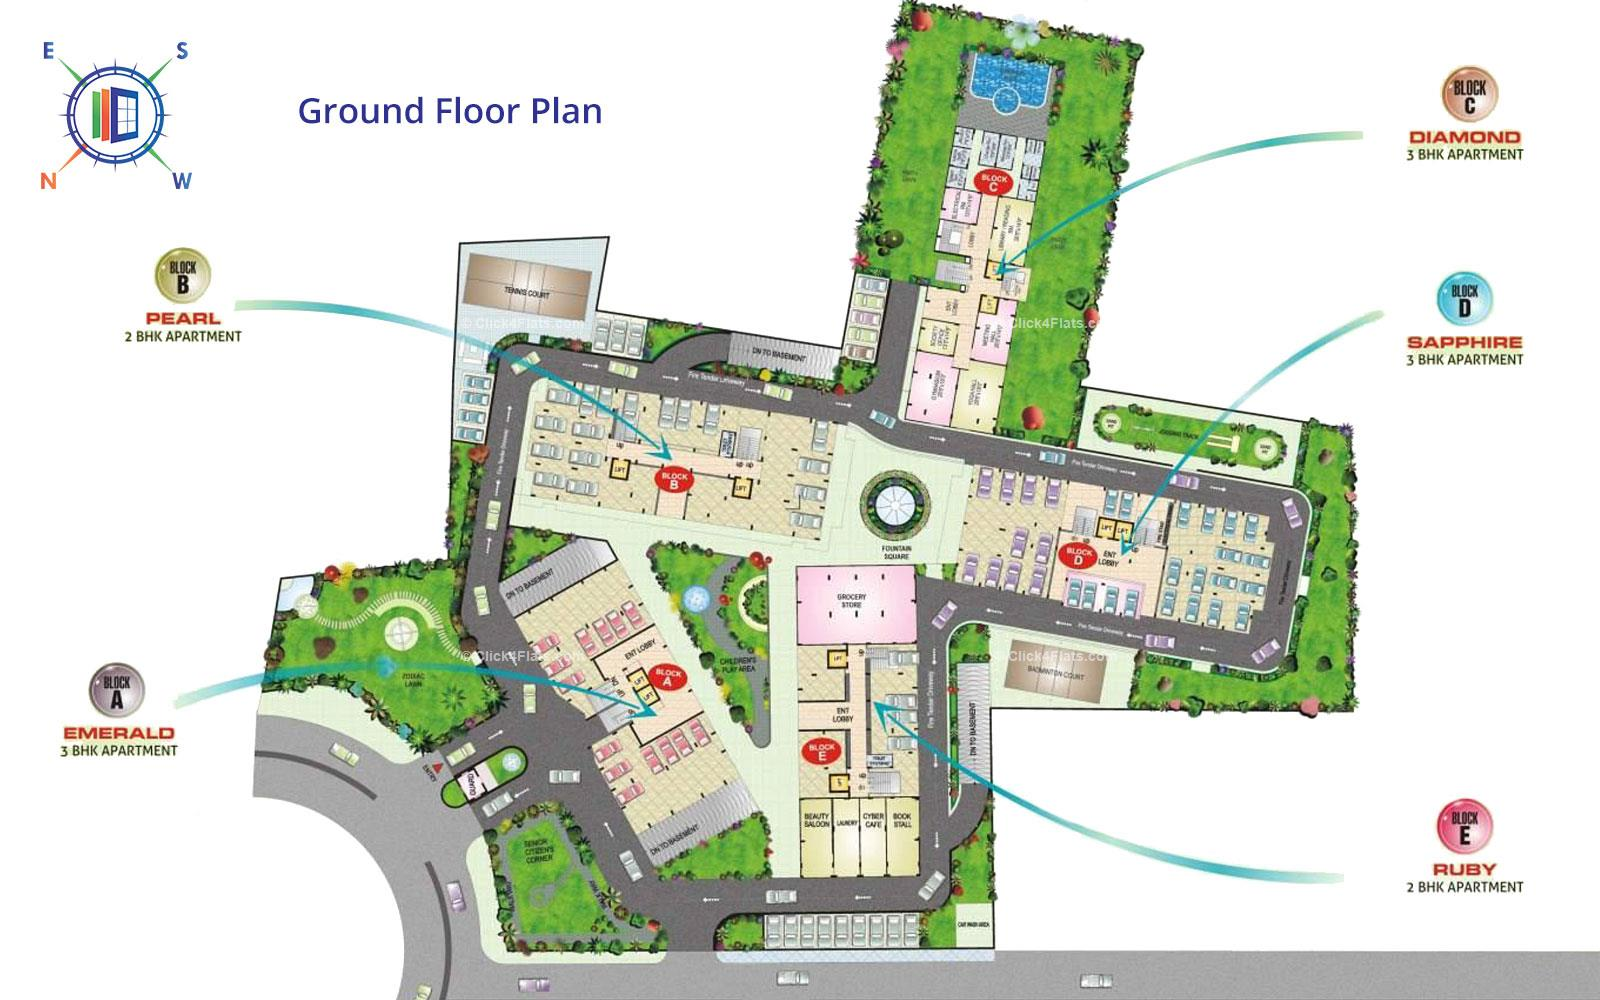 SDC Green Park Ground Floor Plan